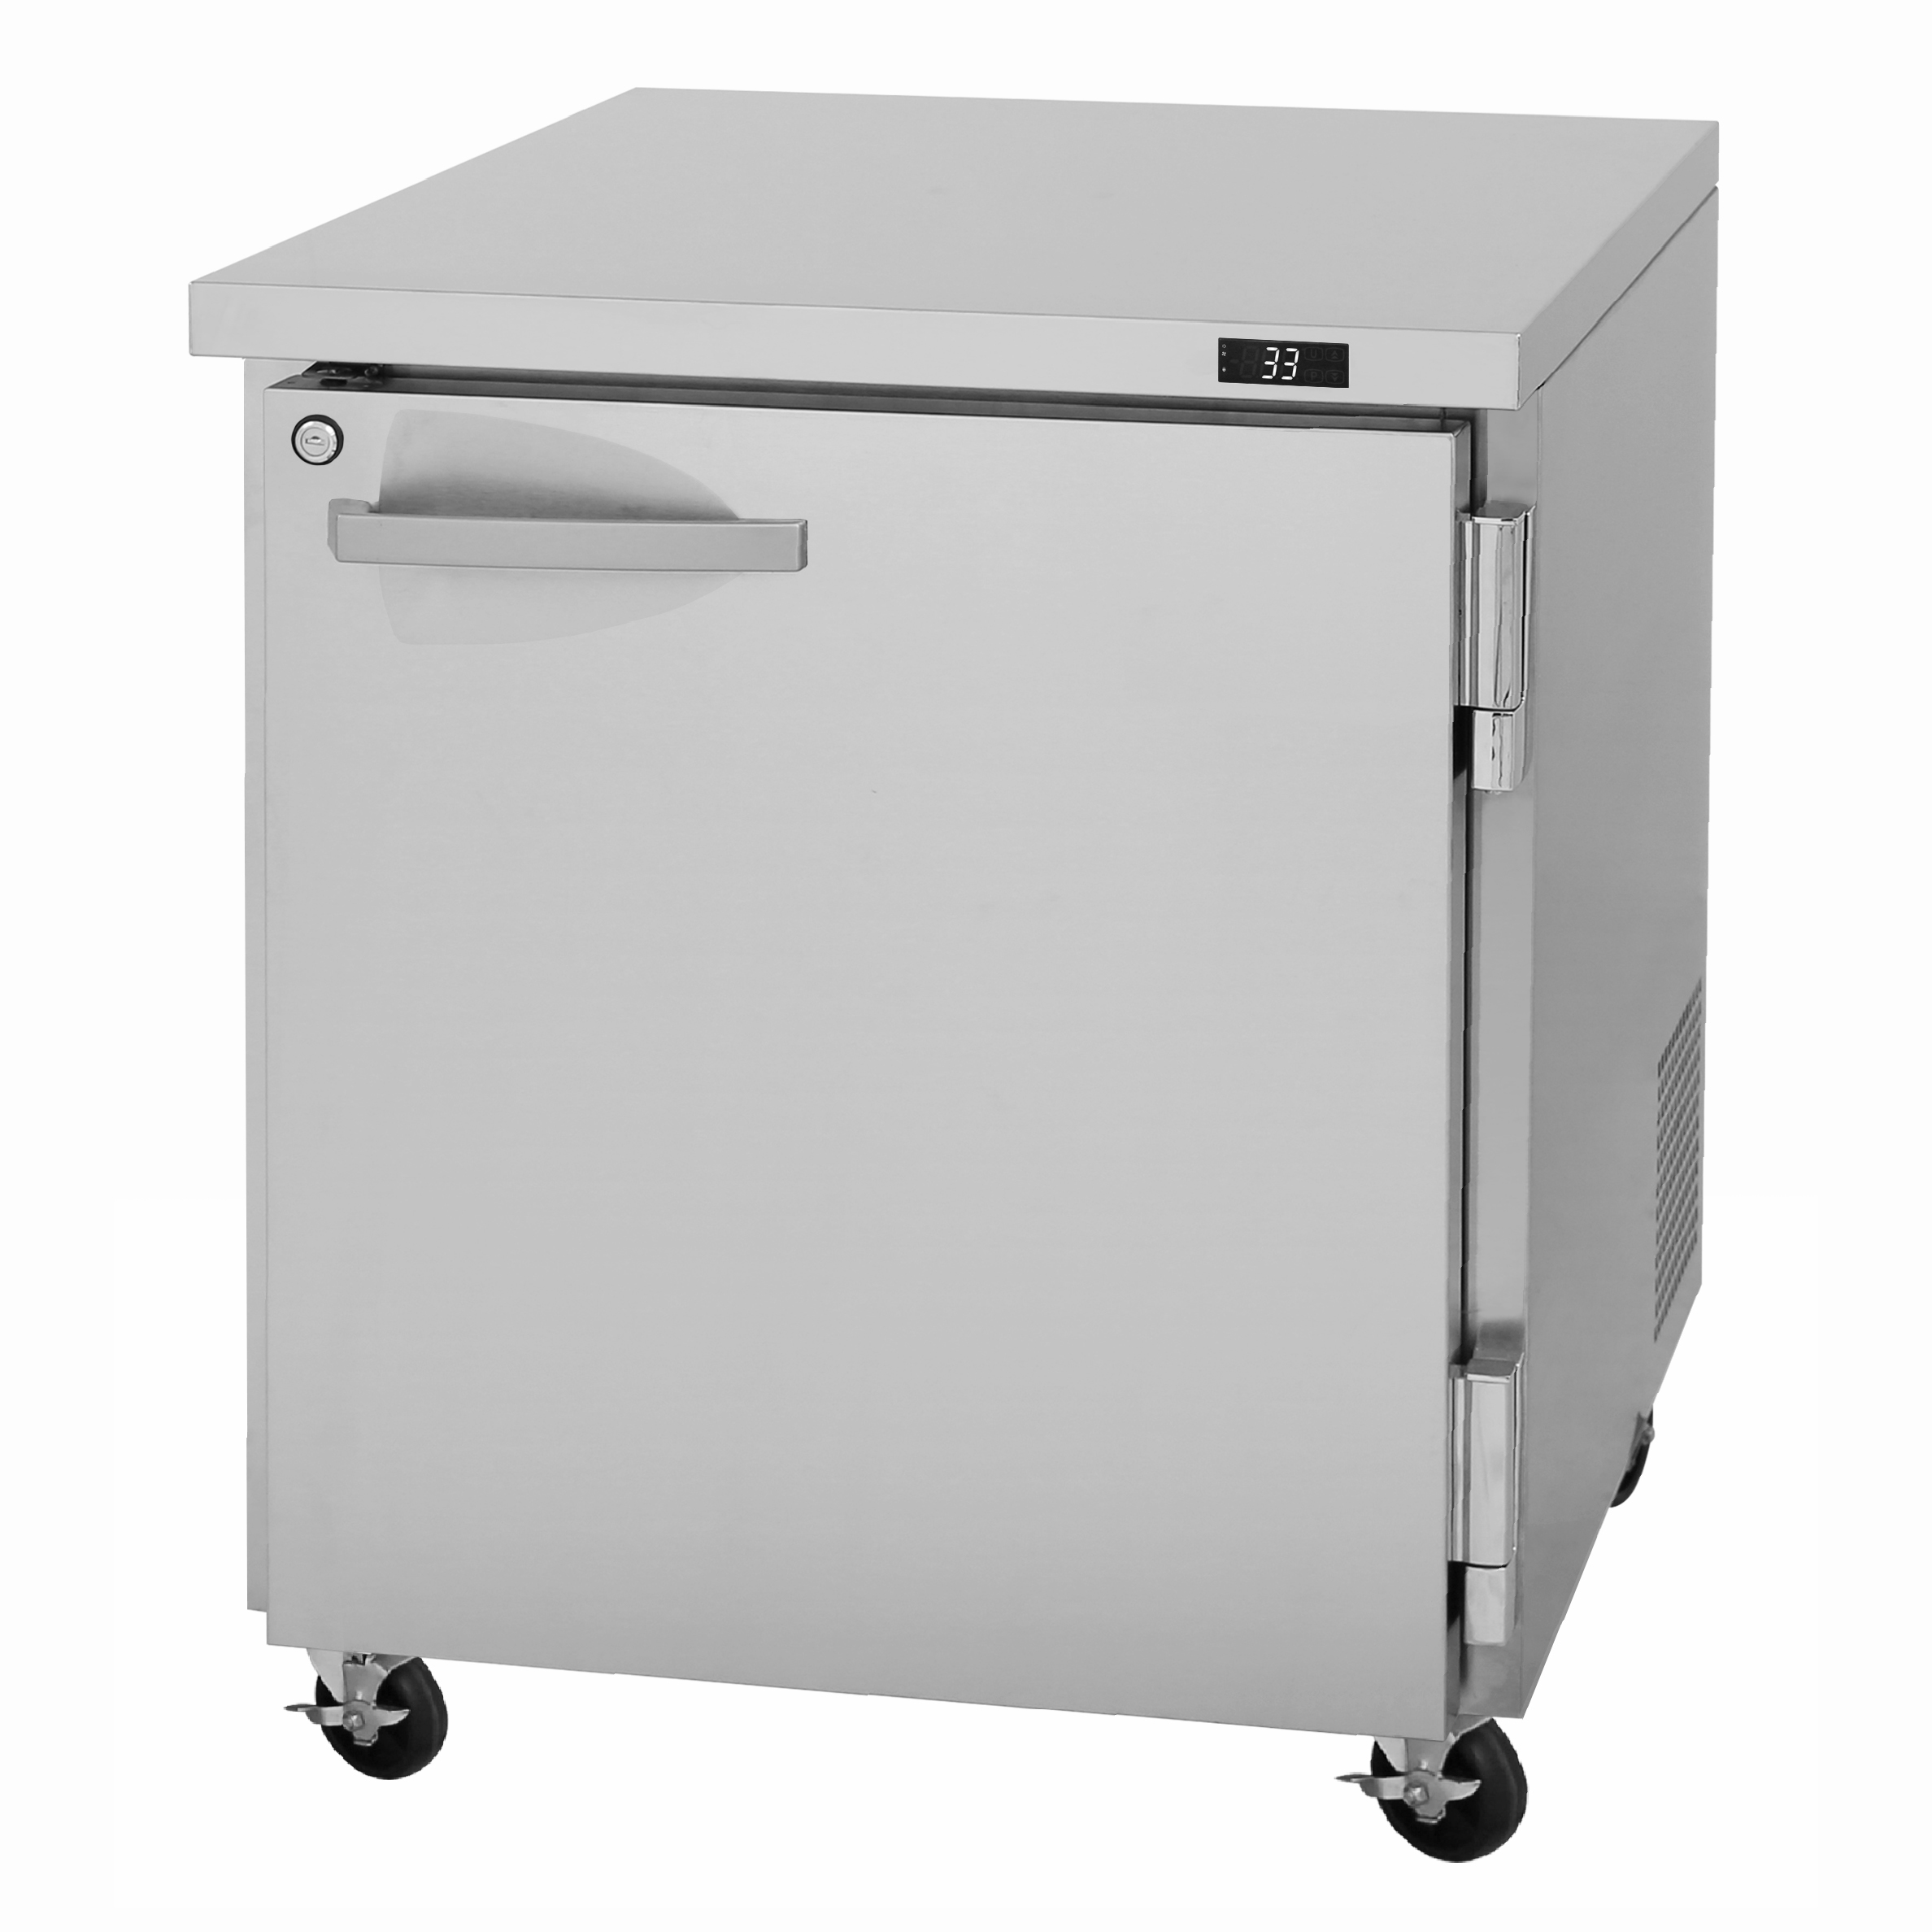 Turbo Air PUR-28-N refrigerator, undercounter, reach-in